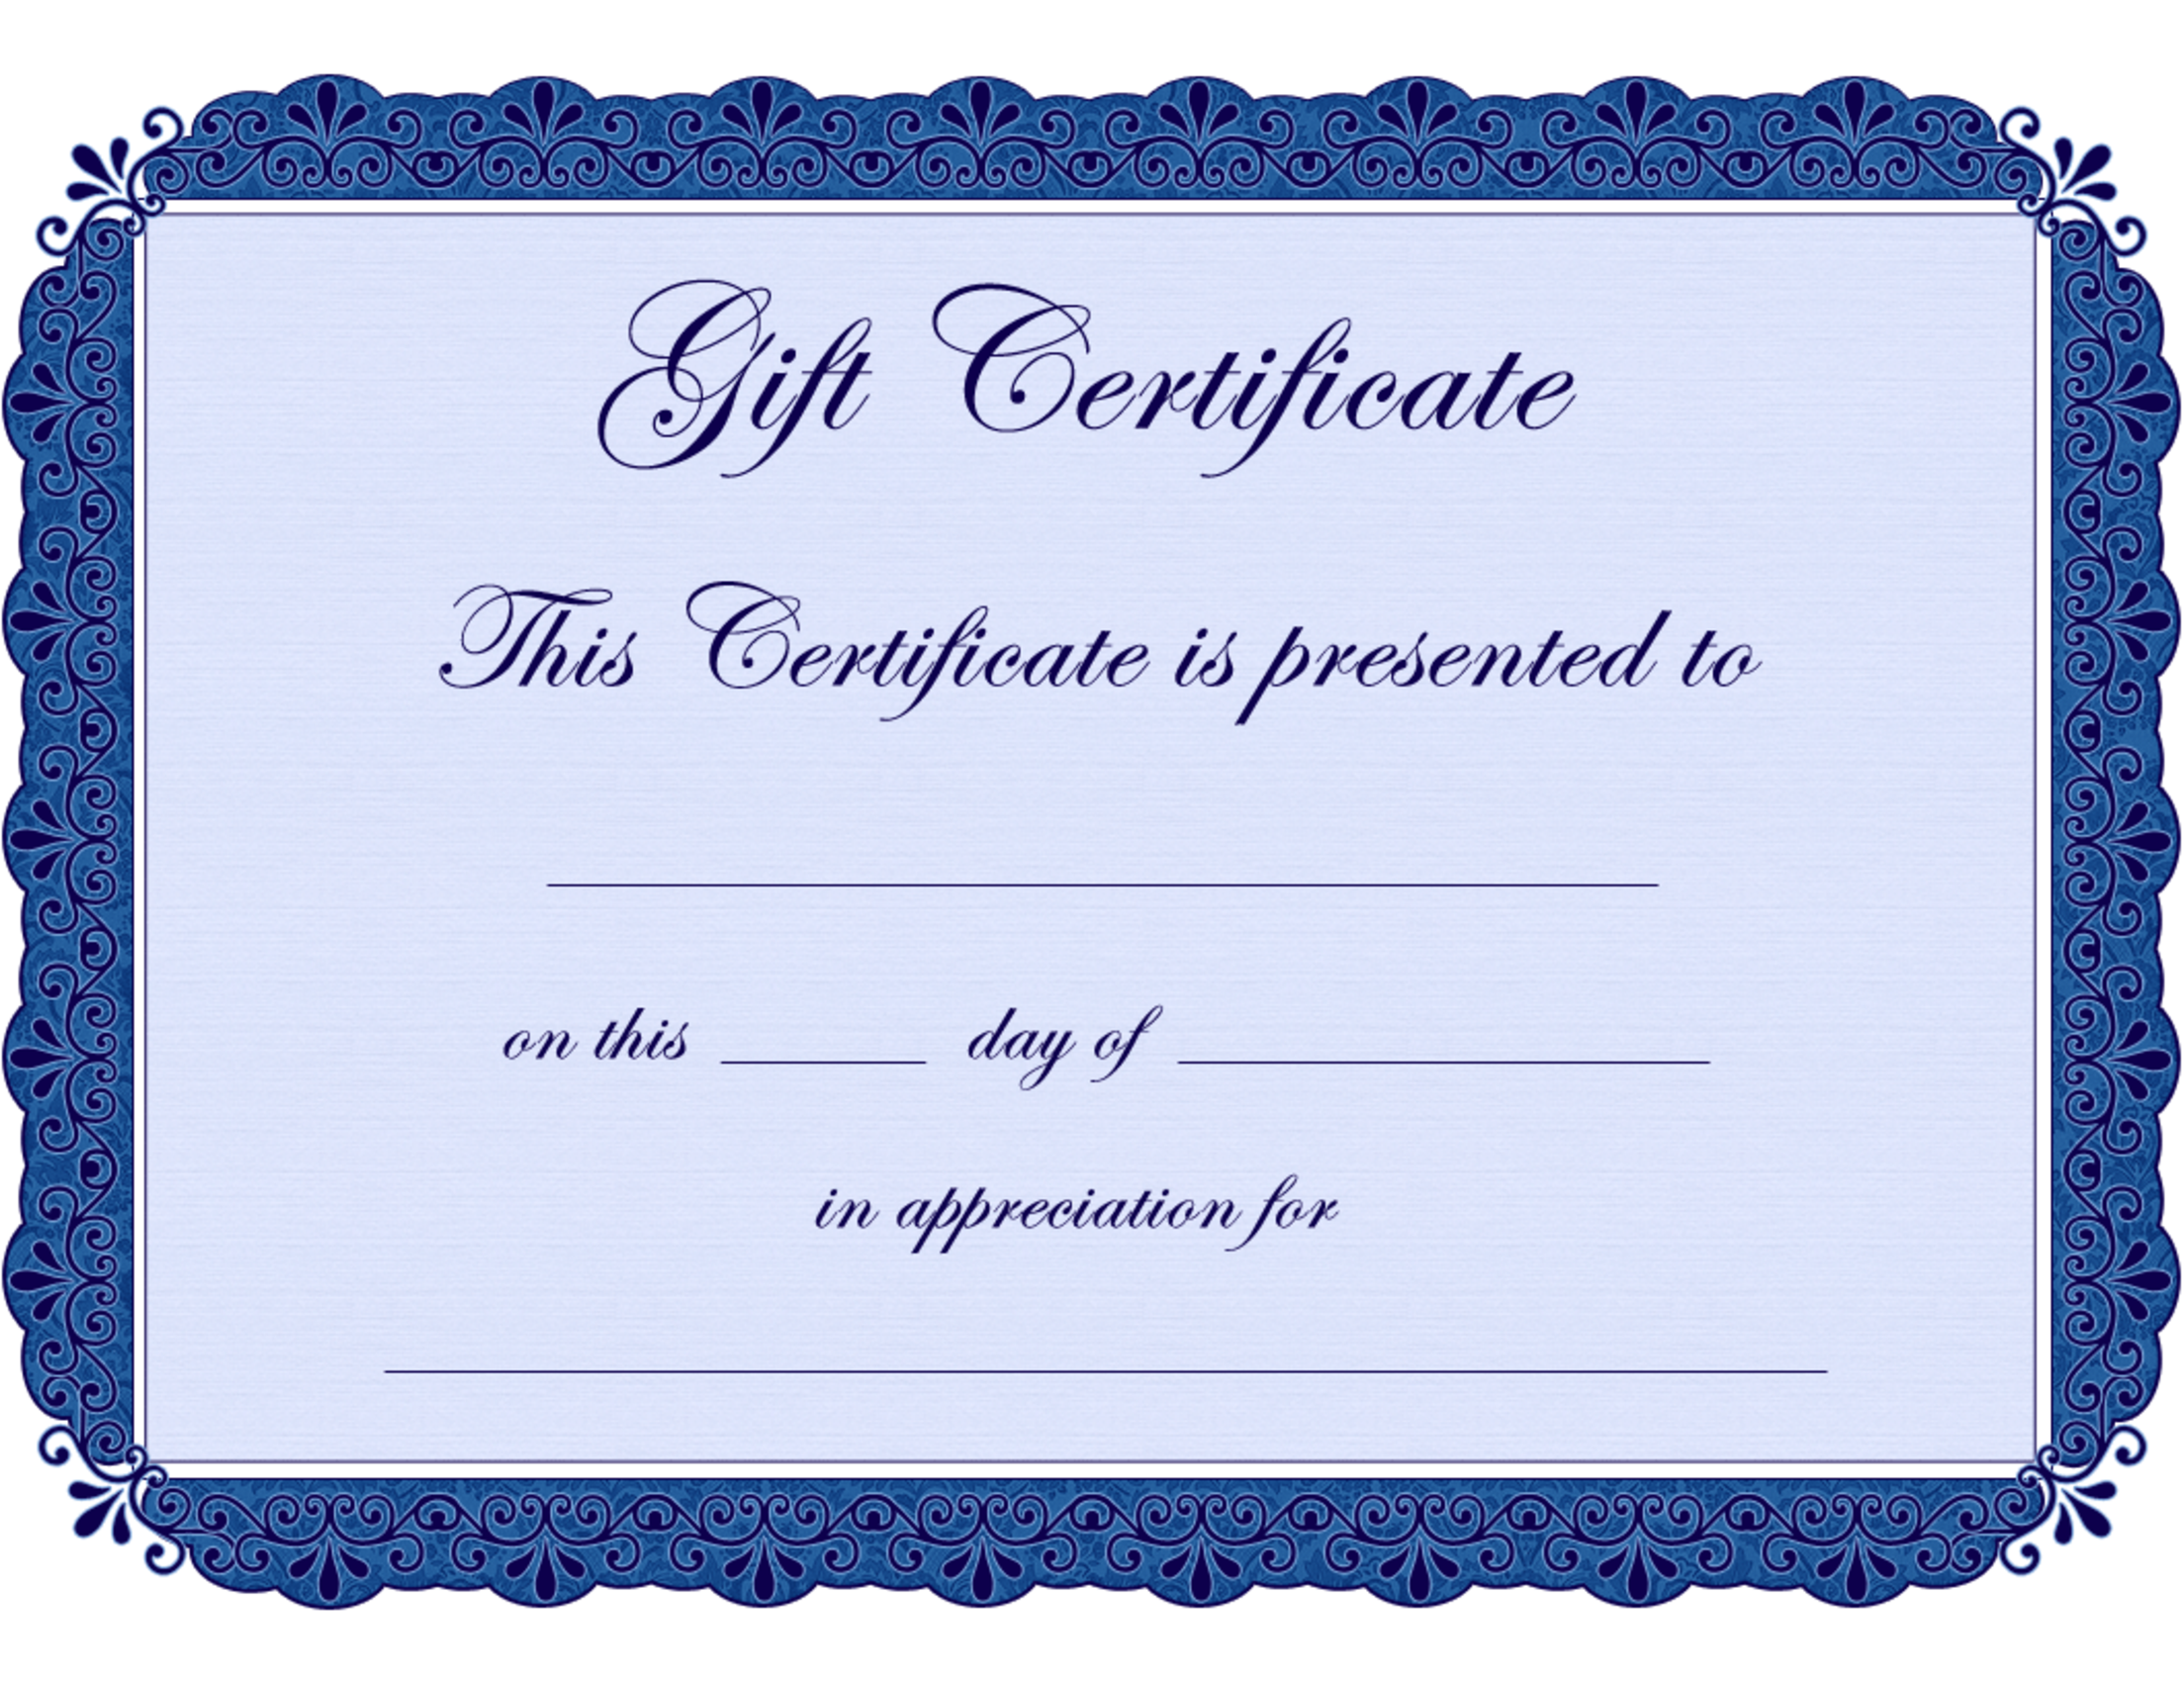 printable gift certificates clipart clipart kid gift certificate gift certificate value when purchasing a gift